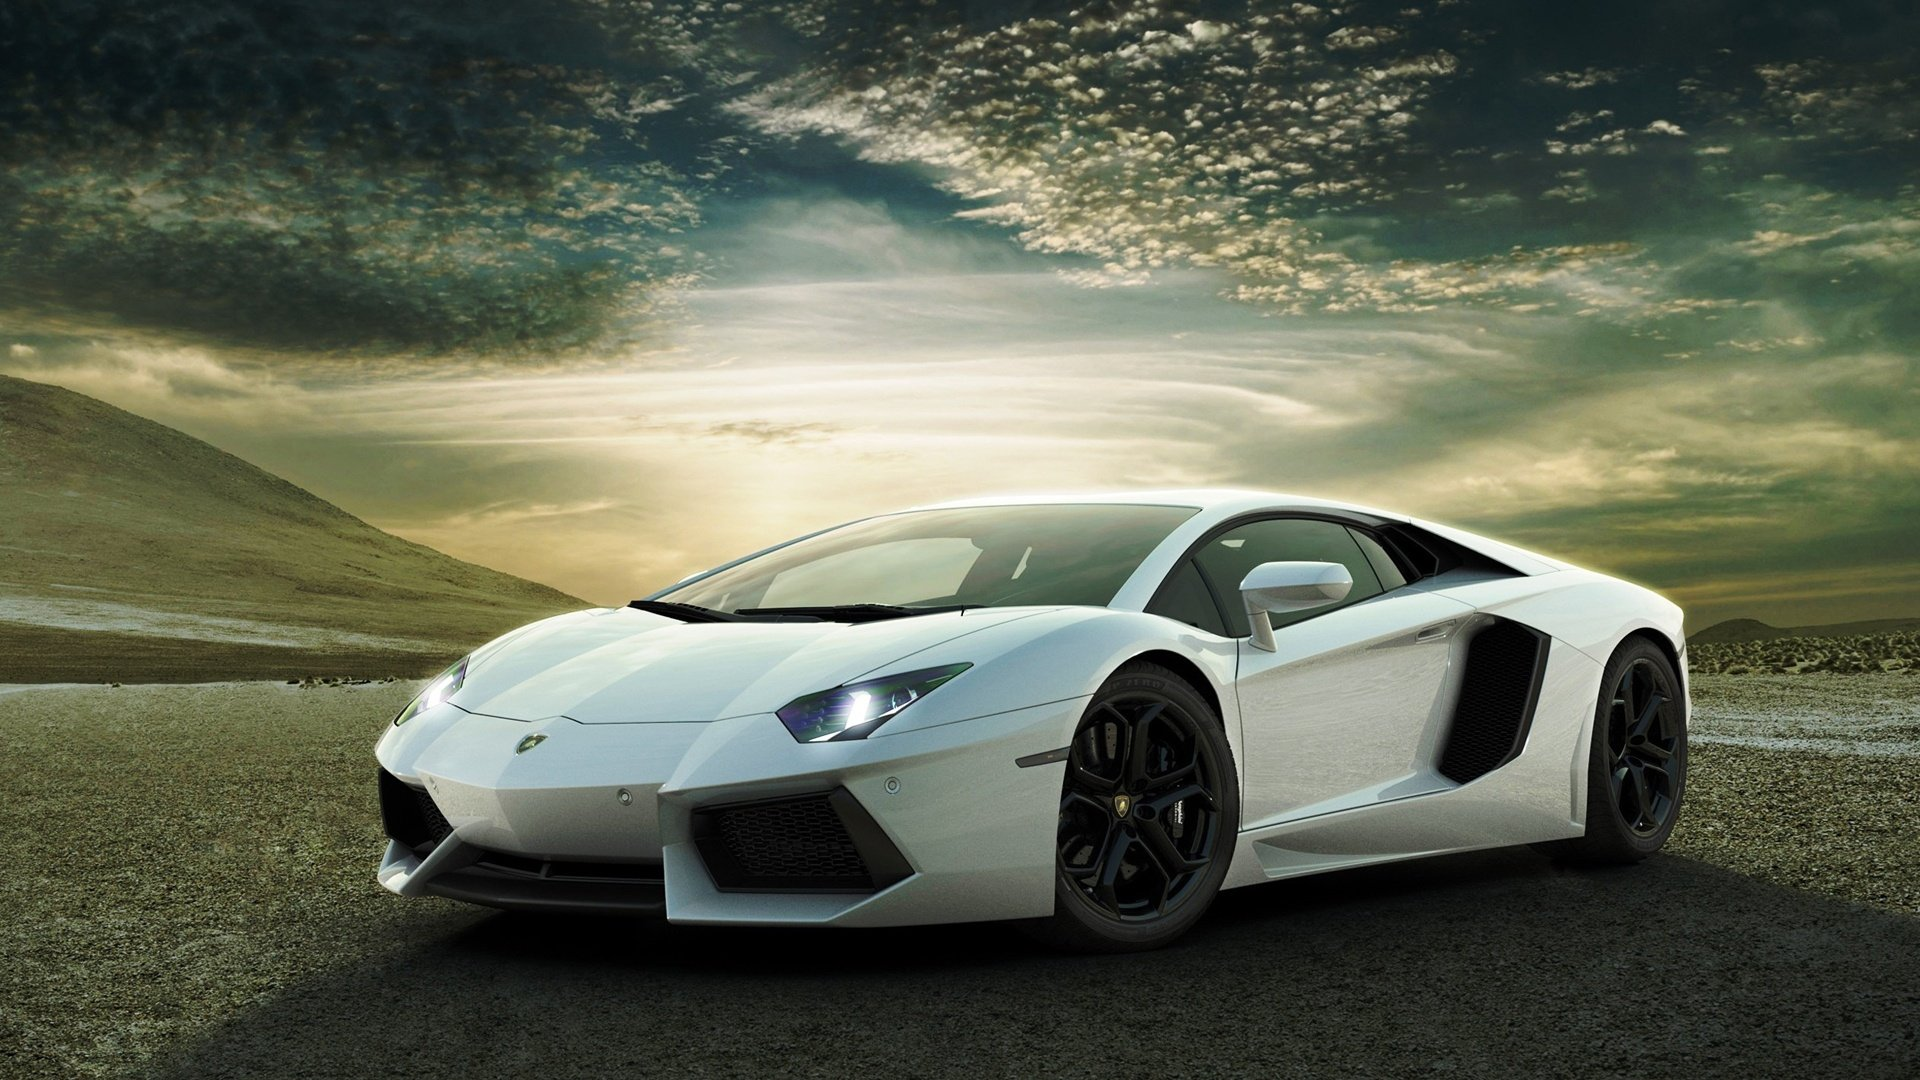 White Lamborghini Aventador Wallpapers HD Wallpapers 1920x1080